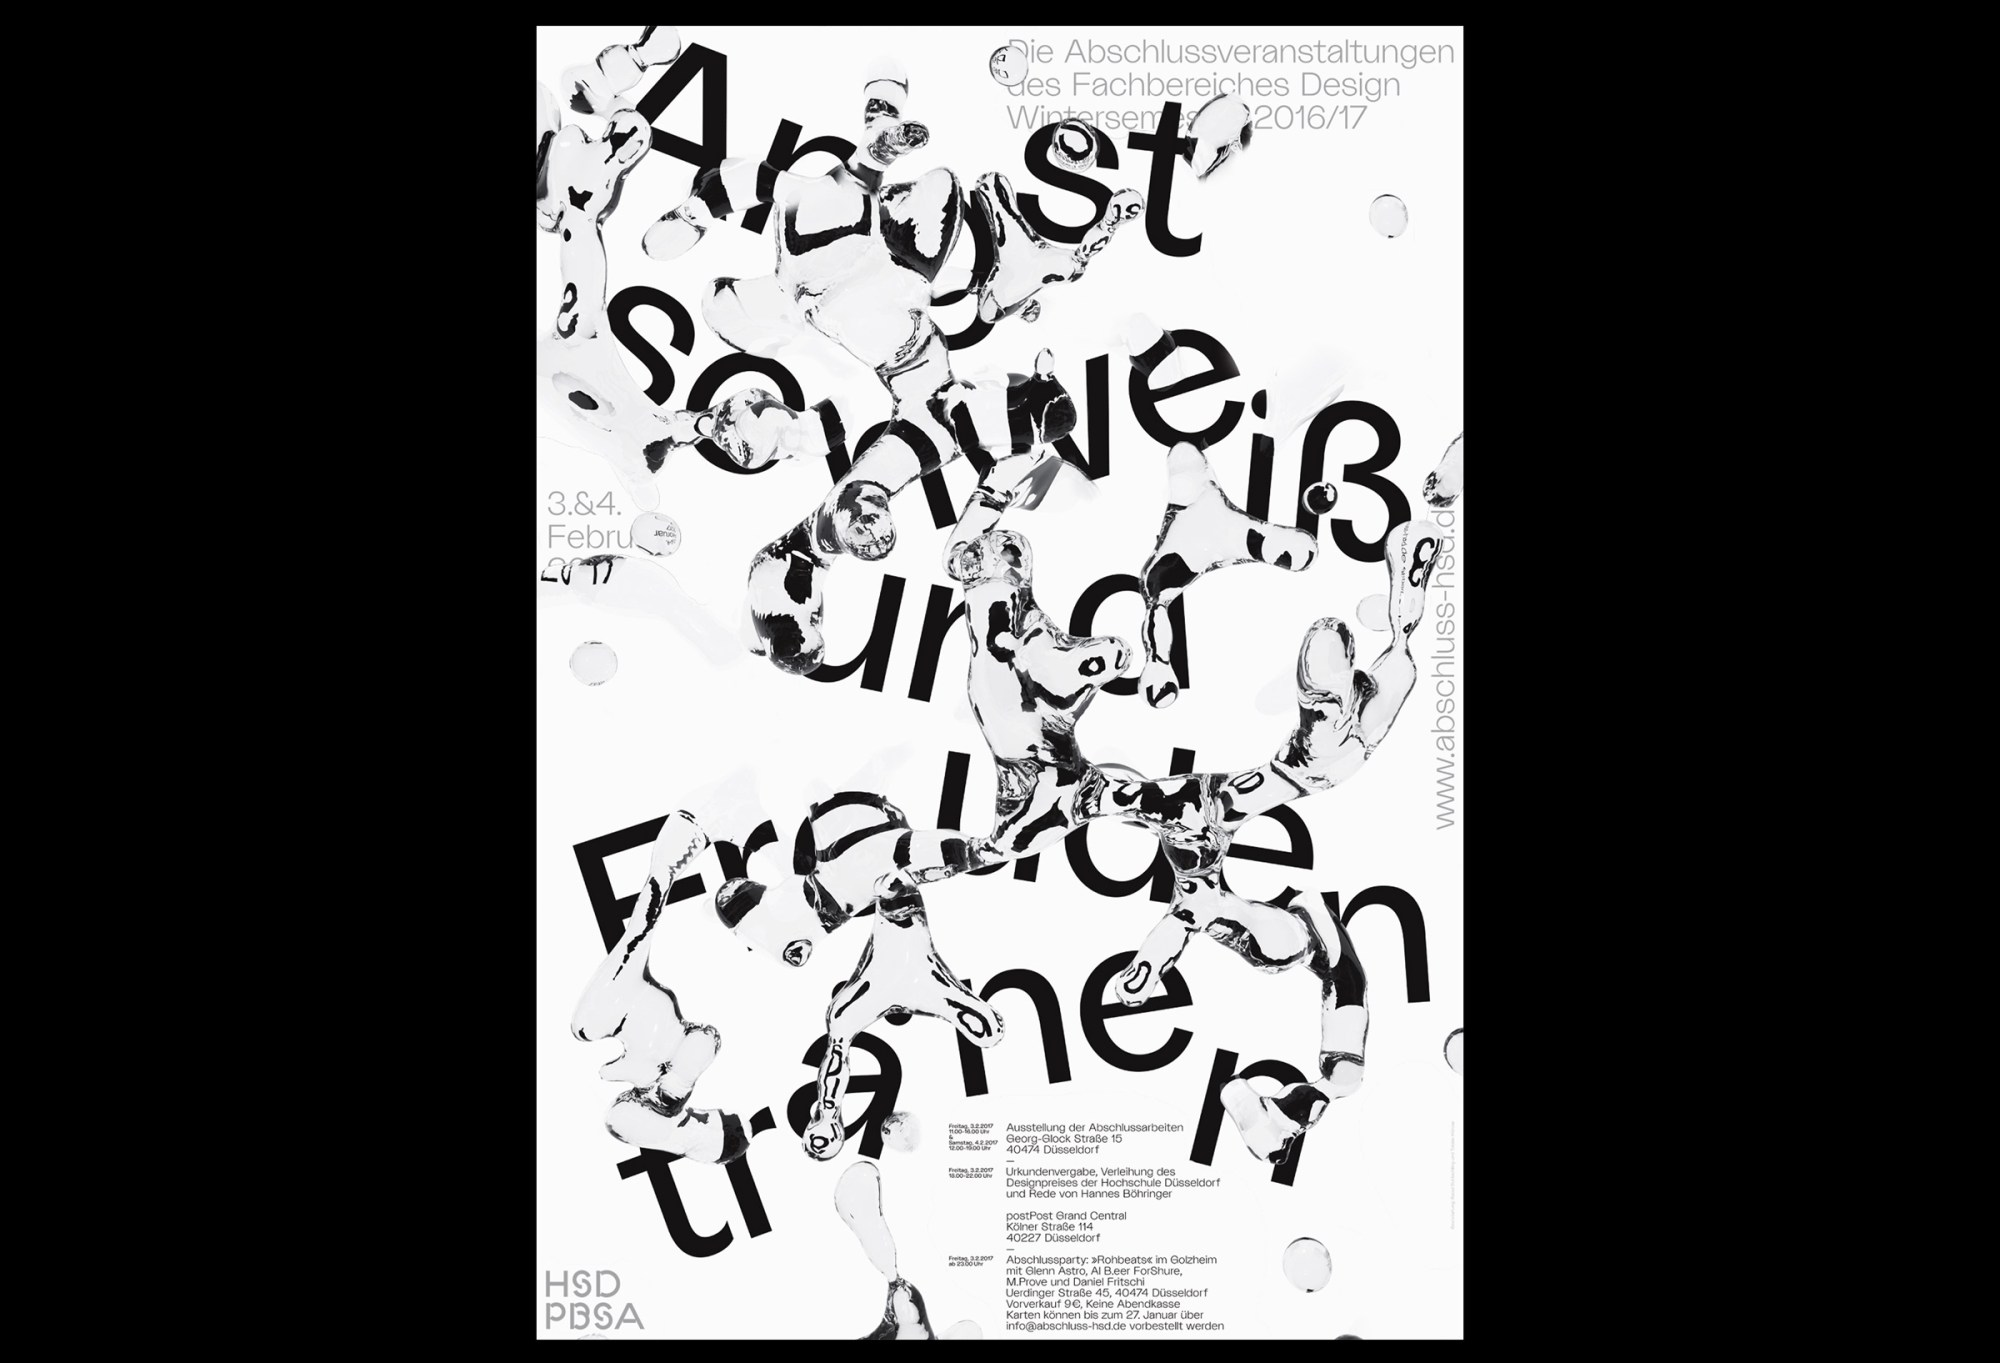 Interview with tobias hnow ligature switzerland based online l where does your interest in graphic and type design come from solutioingenieria Images